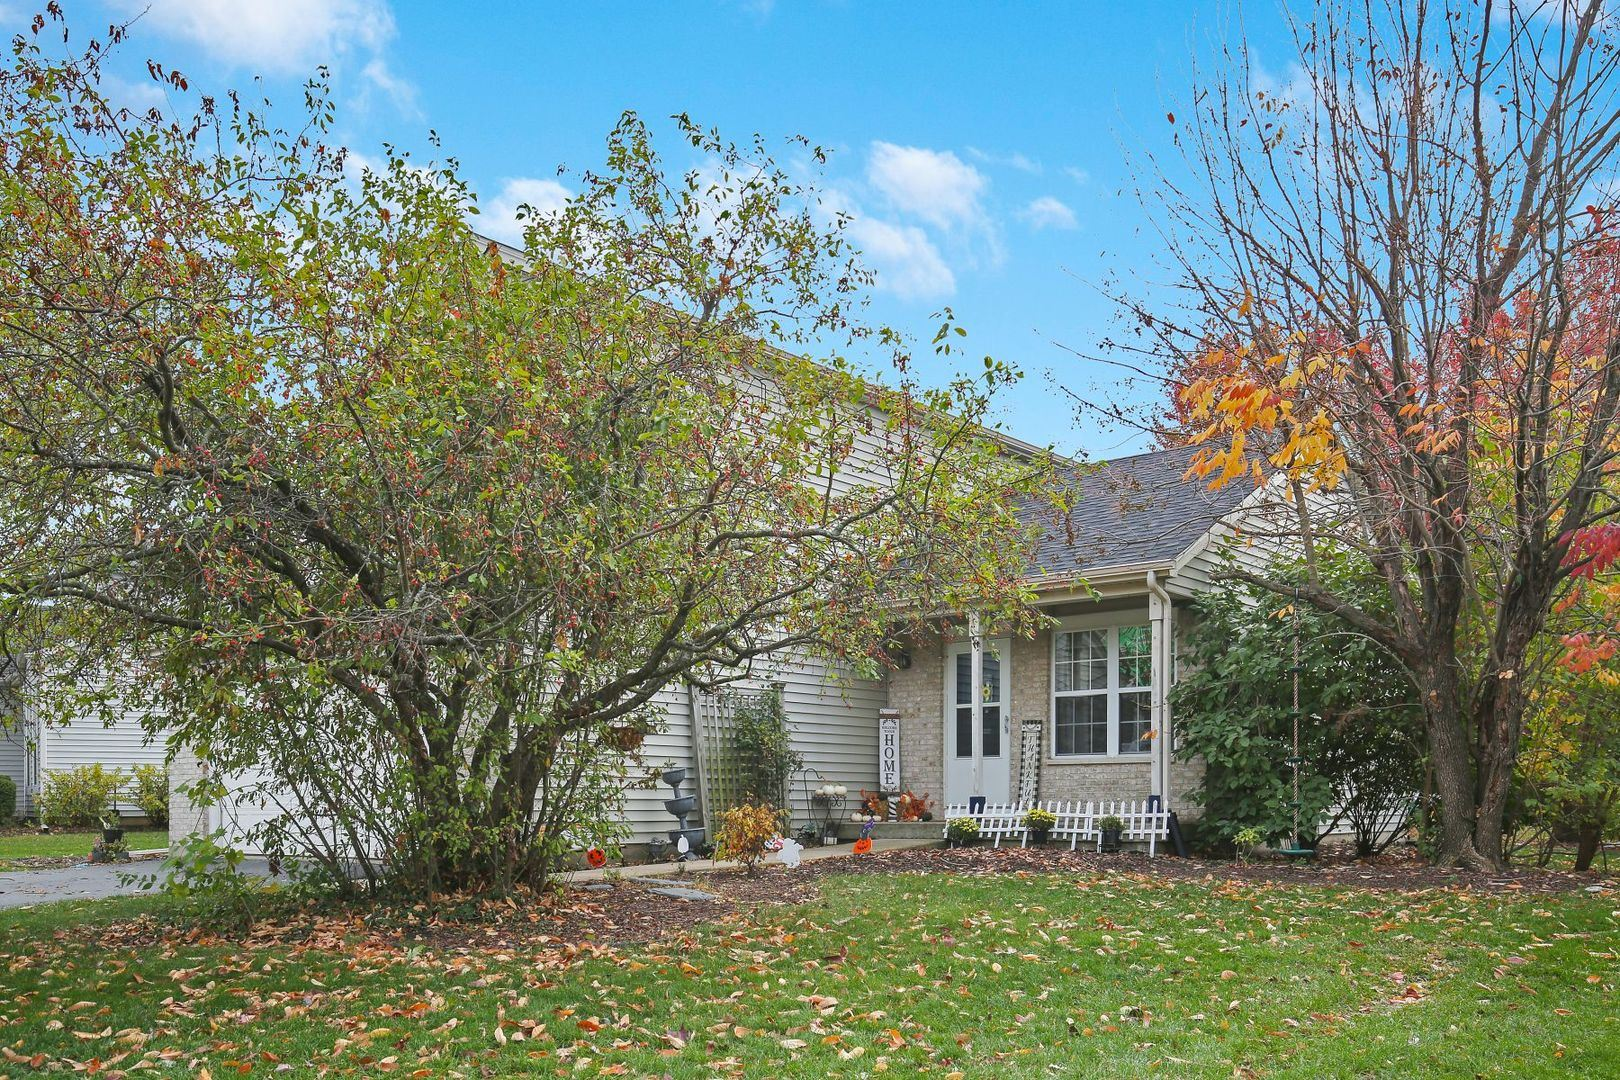 Photo of 2309 Wesmere Lakes Drive, Plainfield, IL 60586 (MLS # 10910281)